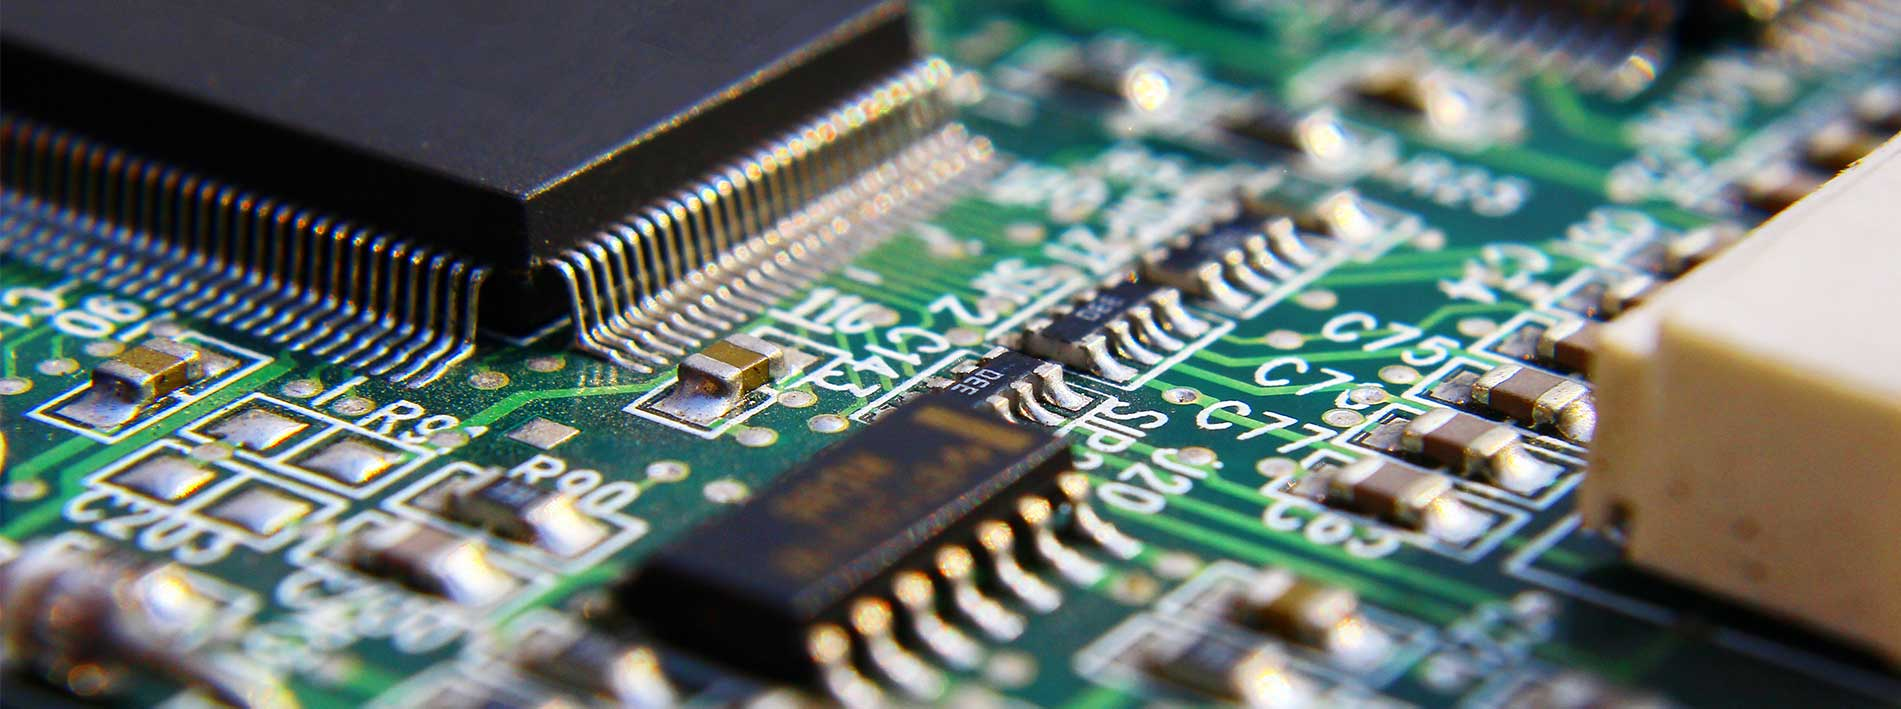 Close up of a printed circuit board for a medical device.